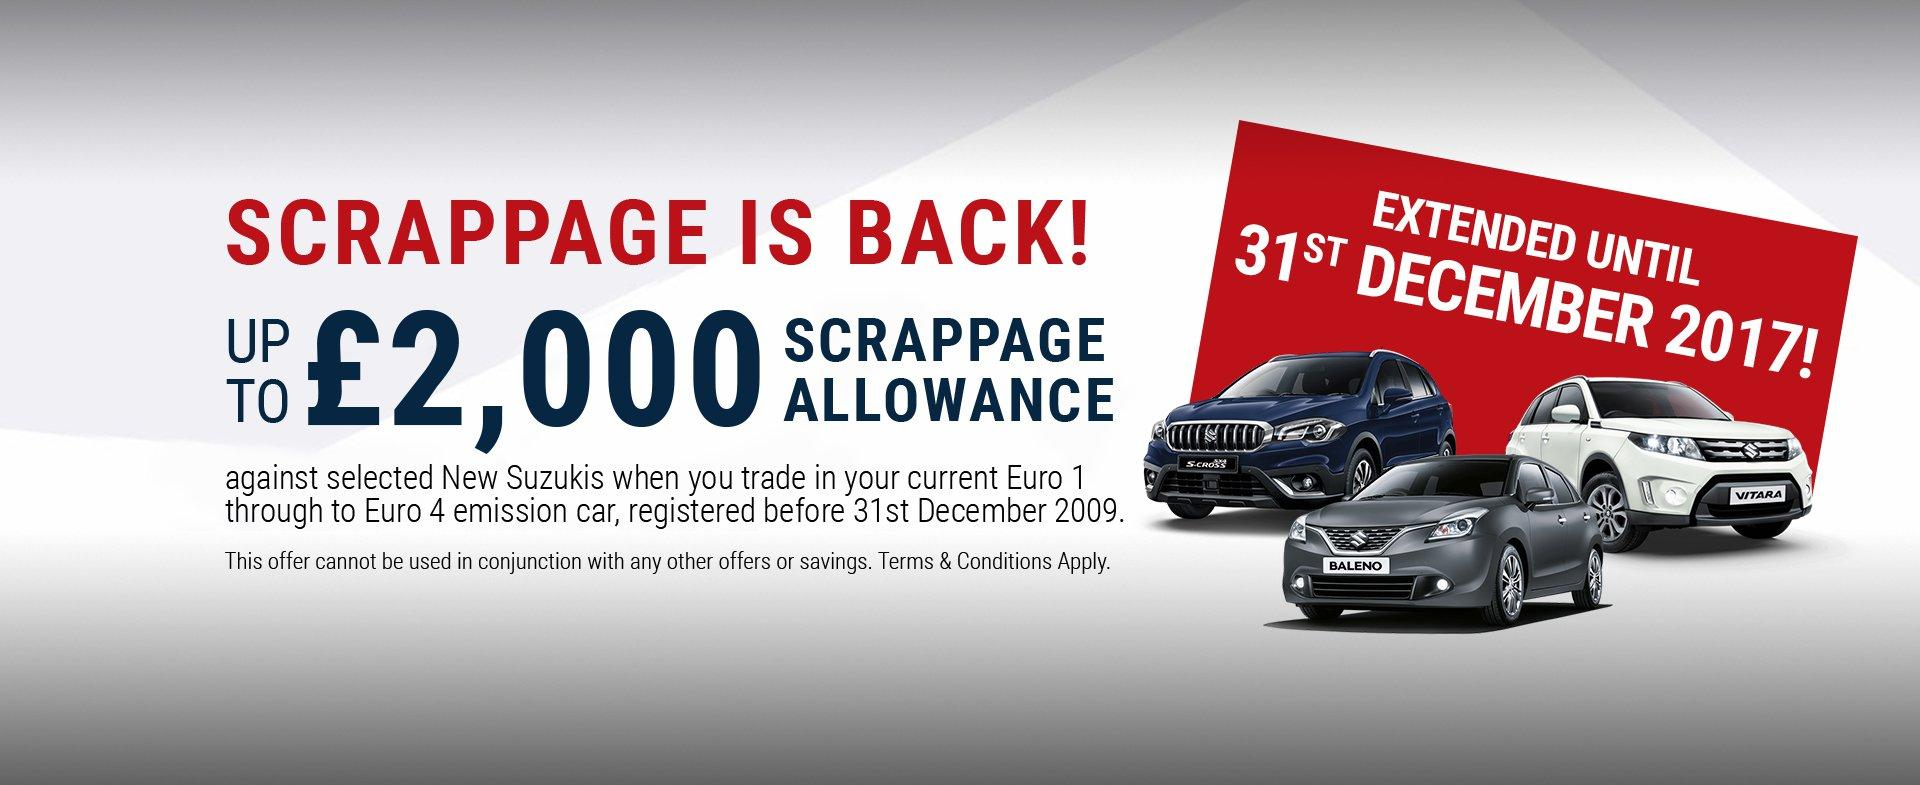 Scrappage Extended to 31st December 2017